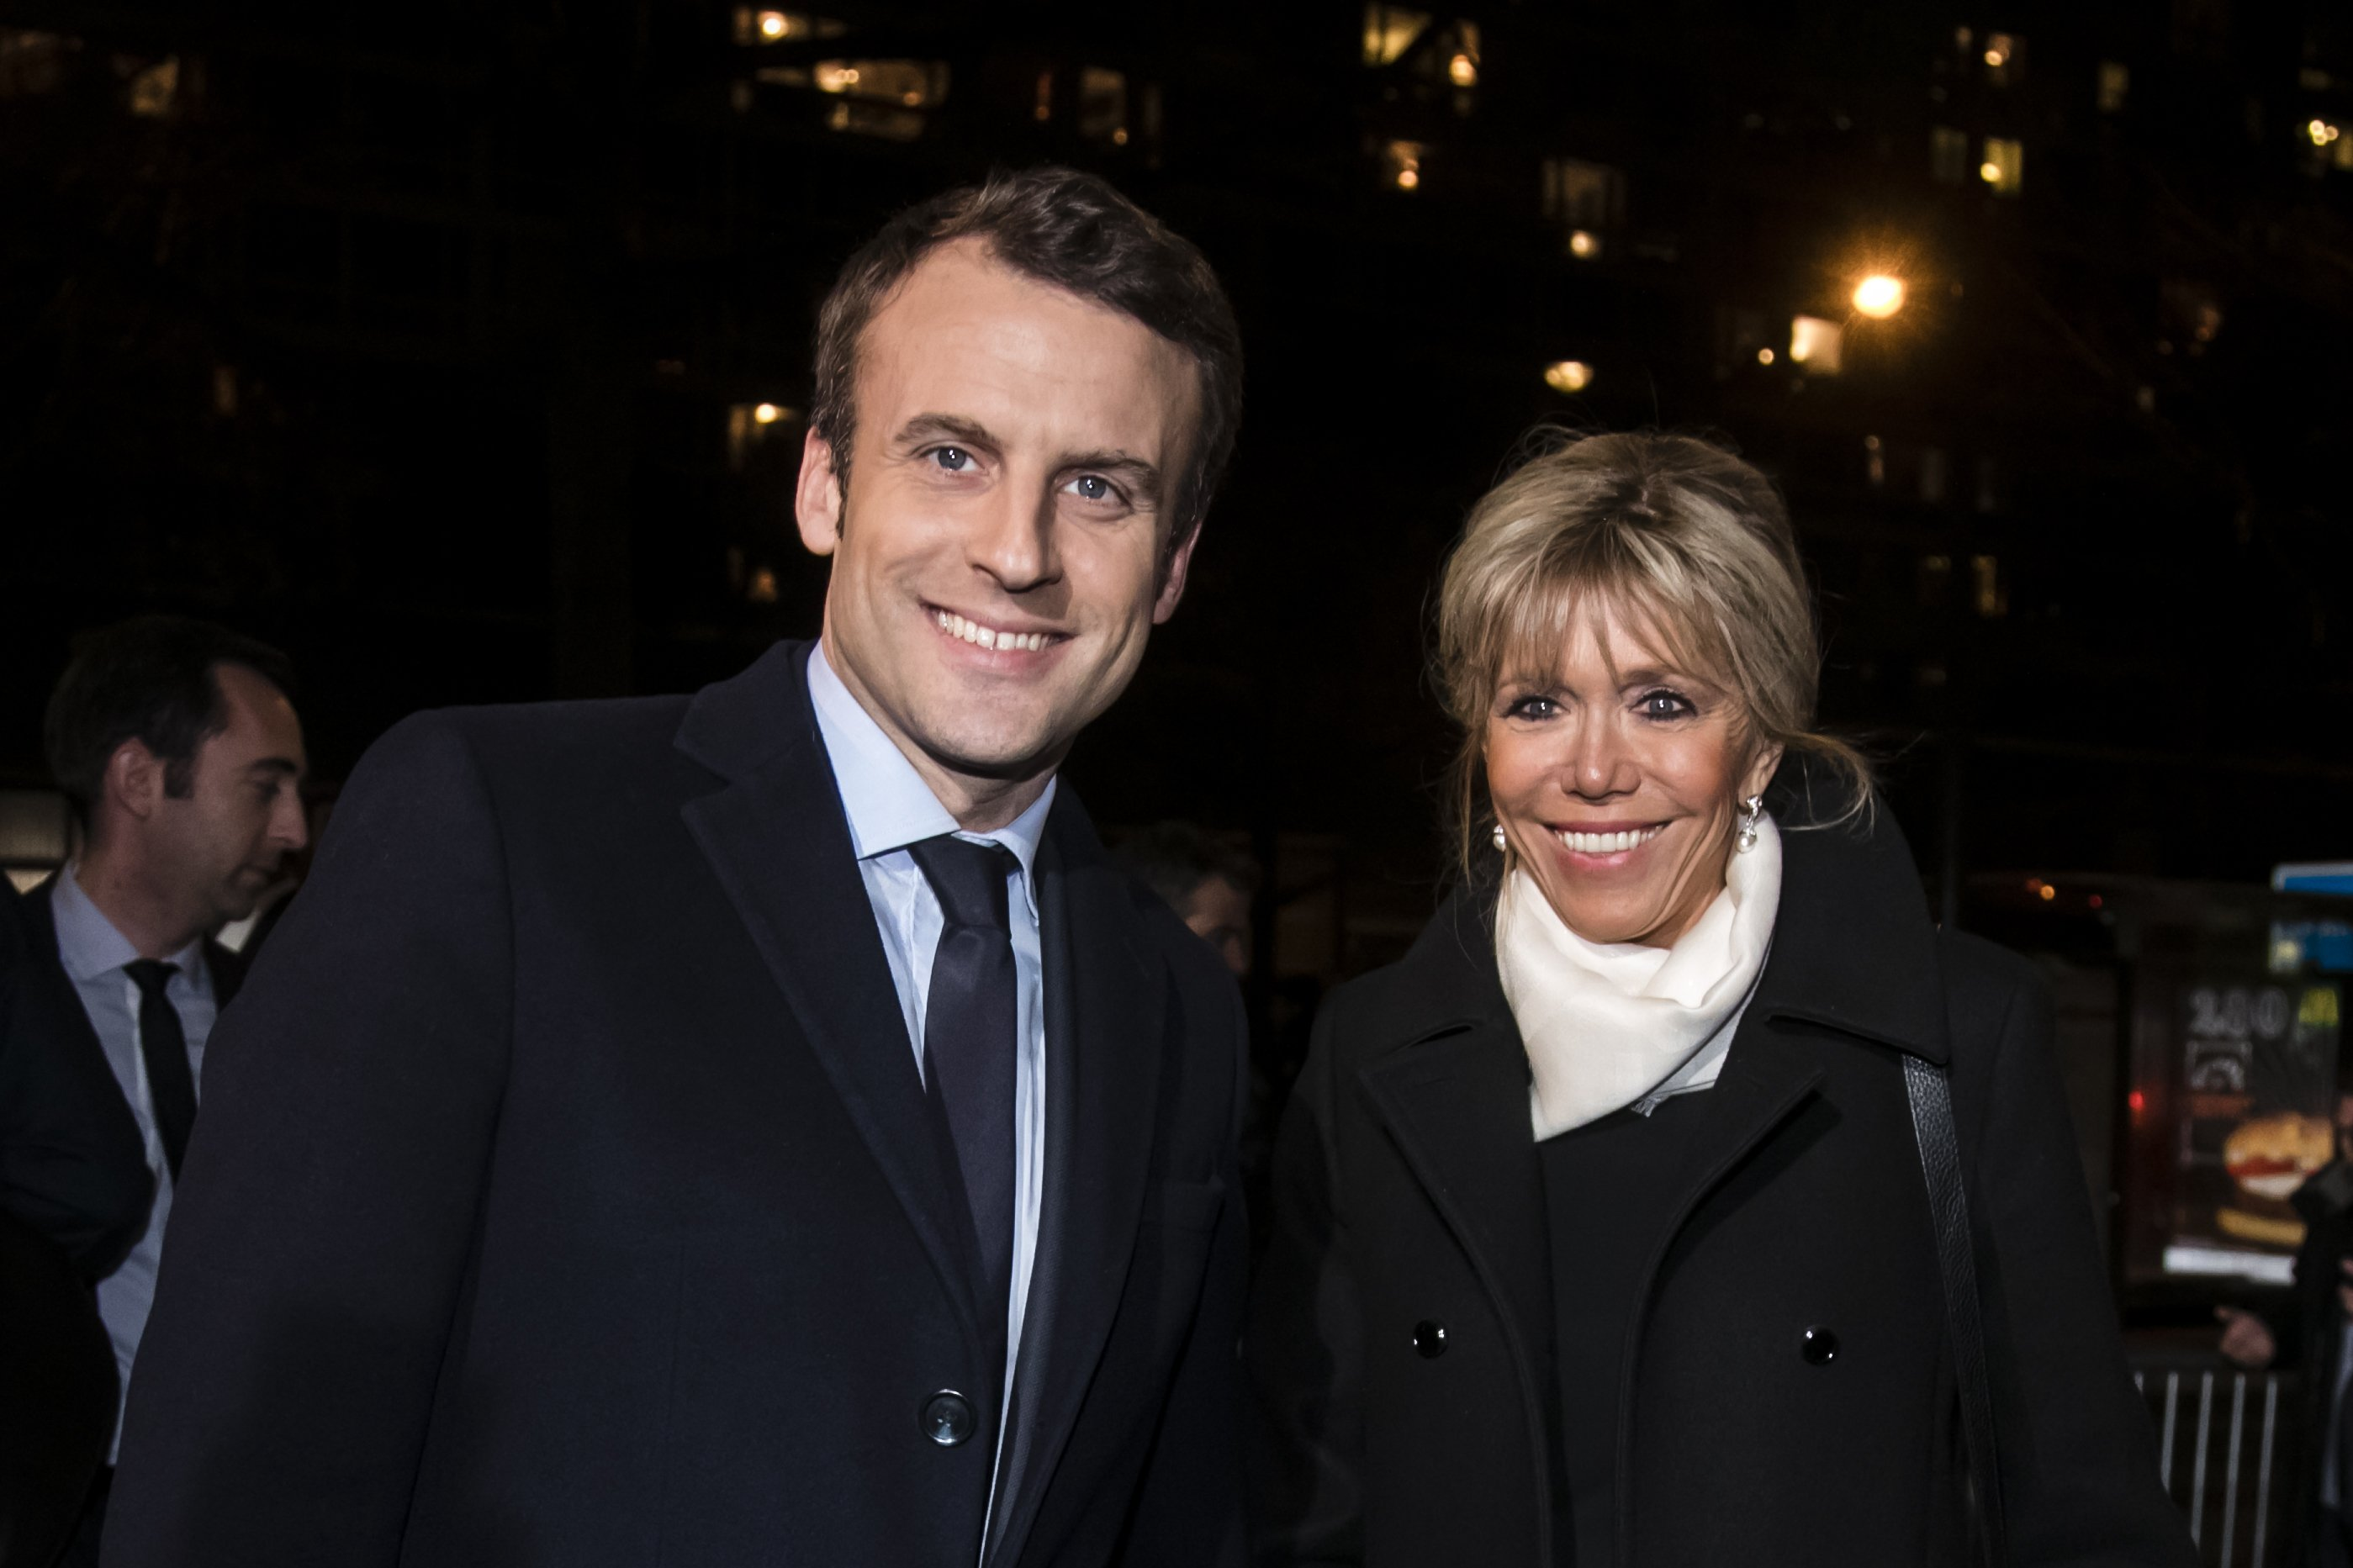 Emmanuel Macron et son épouse Brigitte Trogneux assistent au dîner traditionnel du Crif, le conseil représentatif des institutions juives de France à l'hôtel Pullman à Montparnasse le 22 février 2017 à Paris, France. | Photo : Getty Images